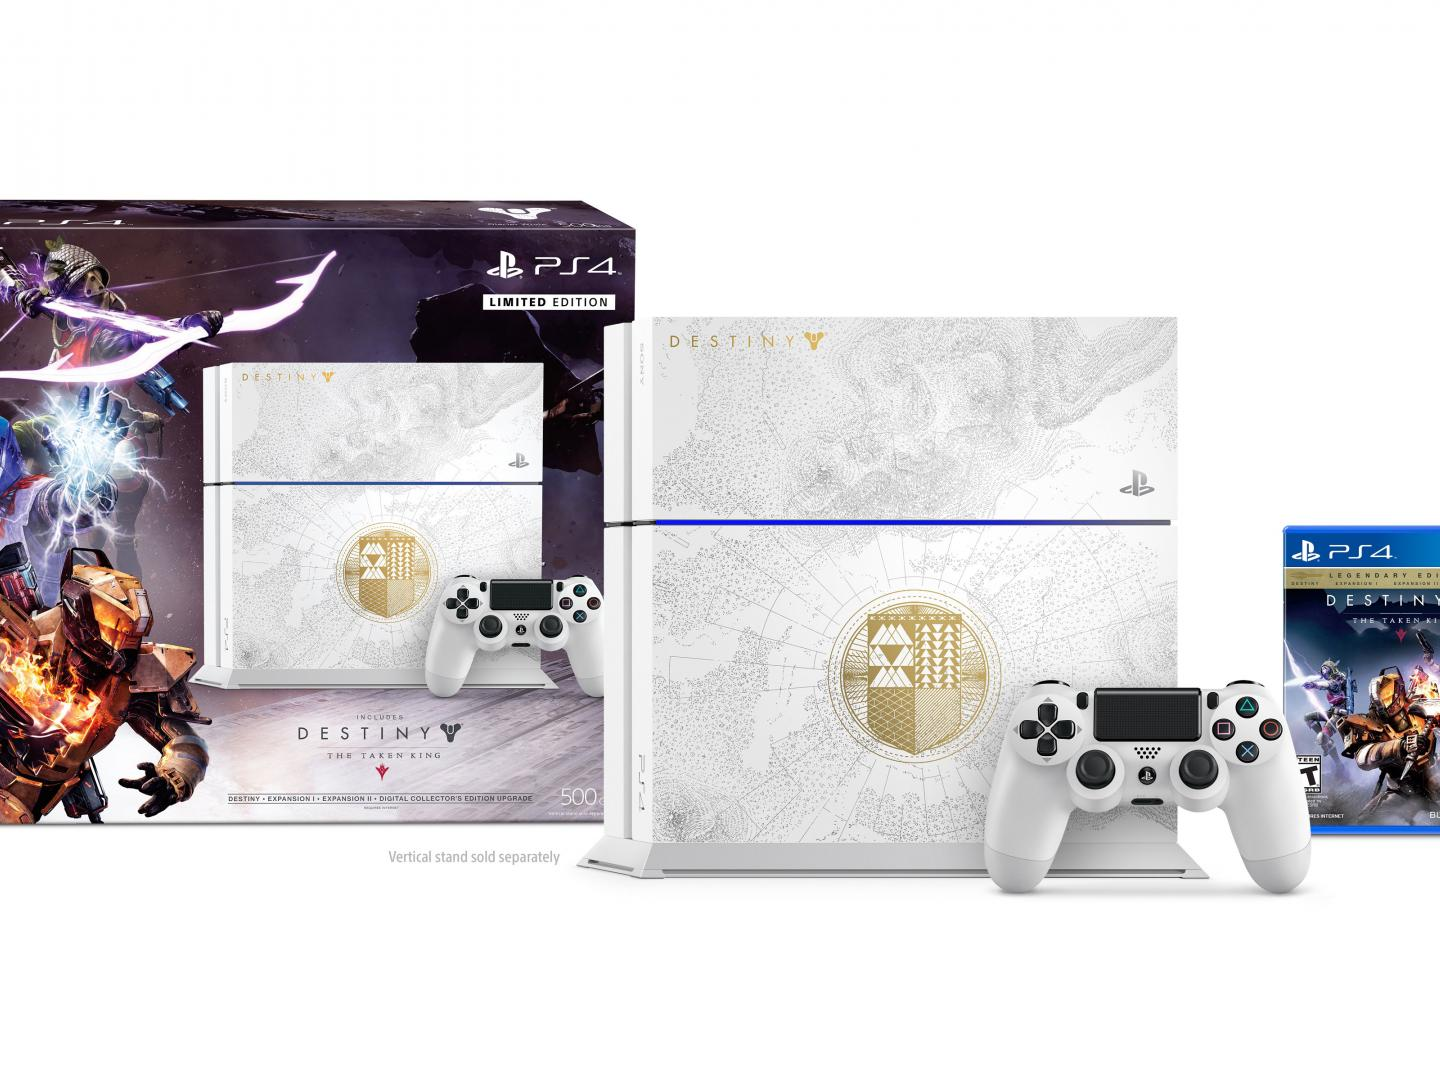 Destiny The Taken King Limited Edition Packaging Thumbnail